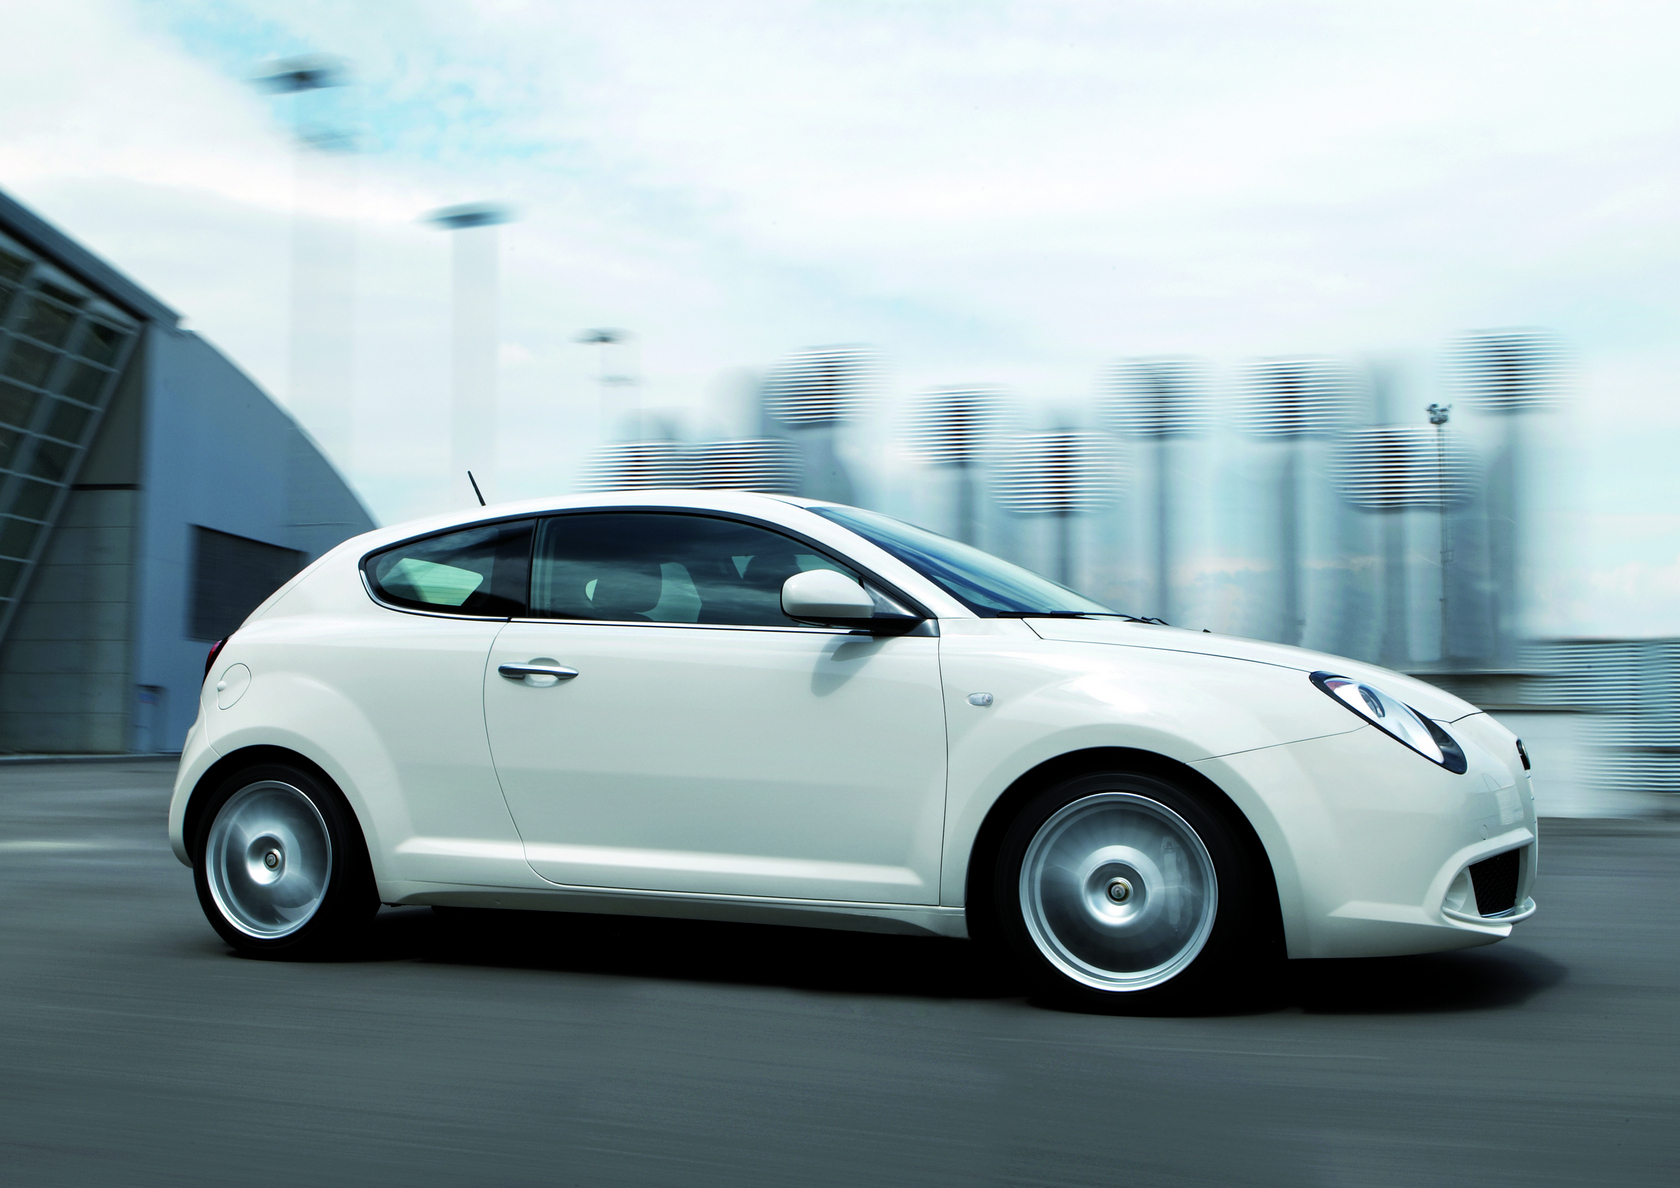 Alfa Romeo Mito Auto Wallpapers Groenlicht Be